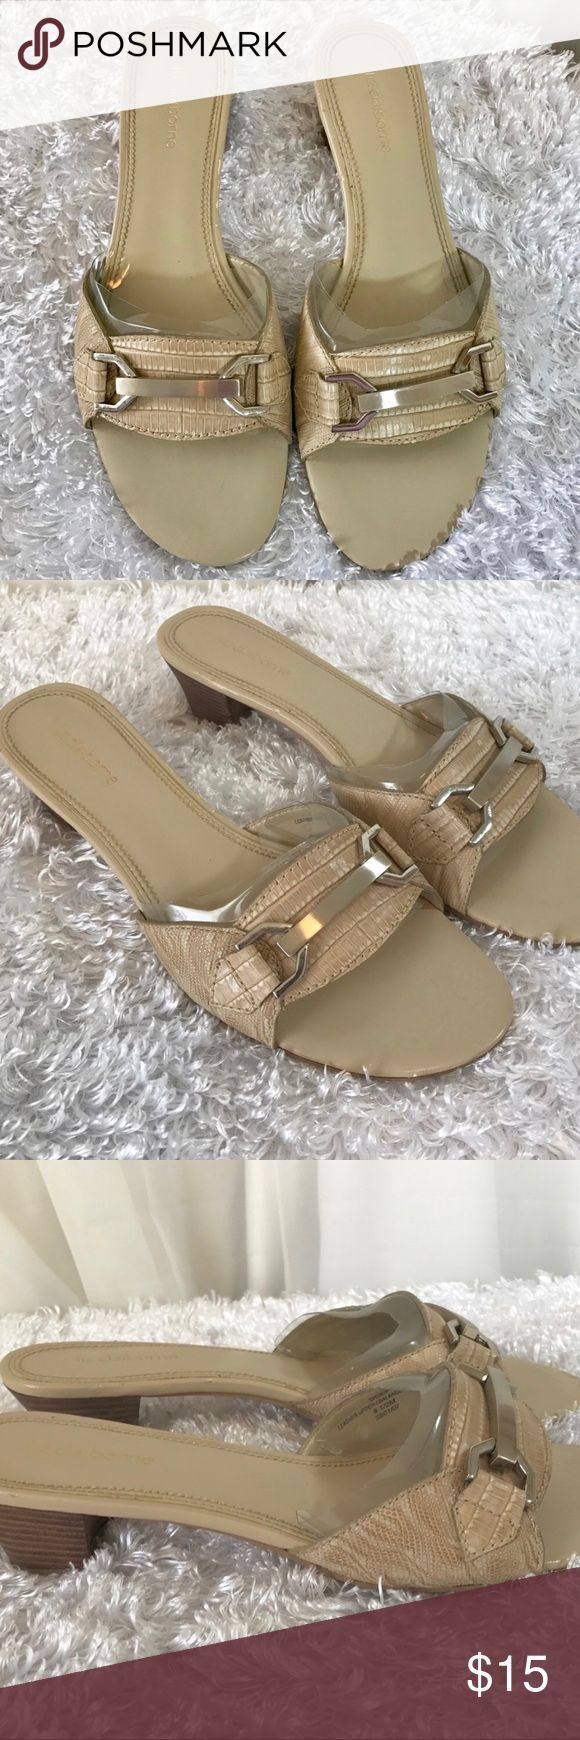 Liz Claiborne Tan Slip On Heels Gently used with no major flaws small chip on heel back 8.5 Medium Width   I ship Monday through Saturday, weather permitting. If you have a moment check out my other items. Thank you! Liz Claiborne Shoes Heels